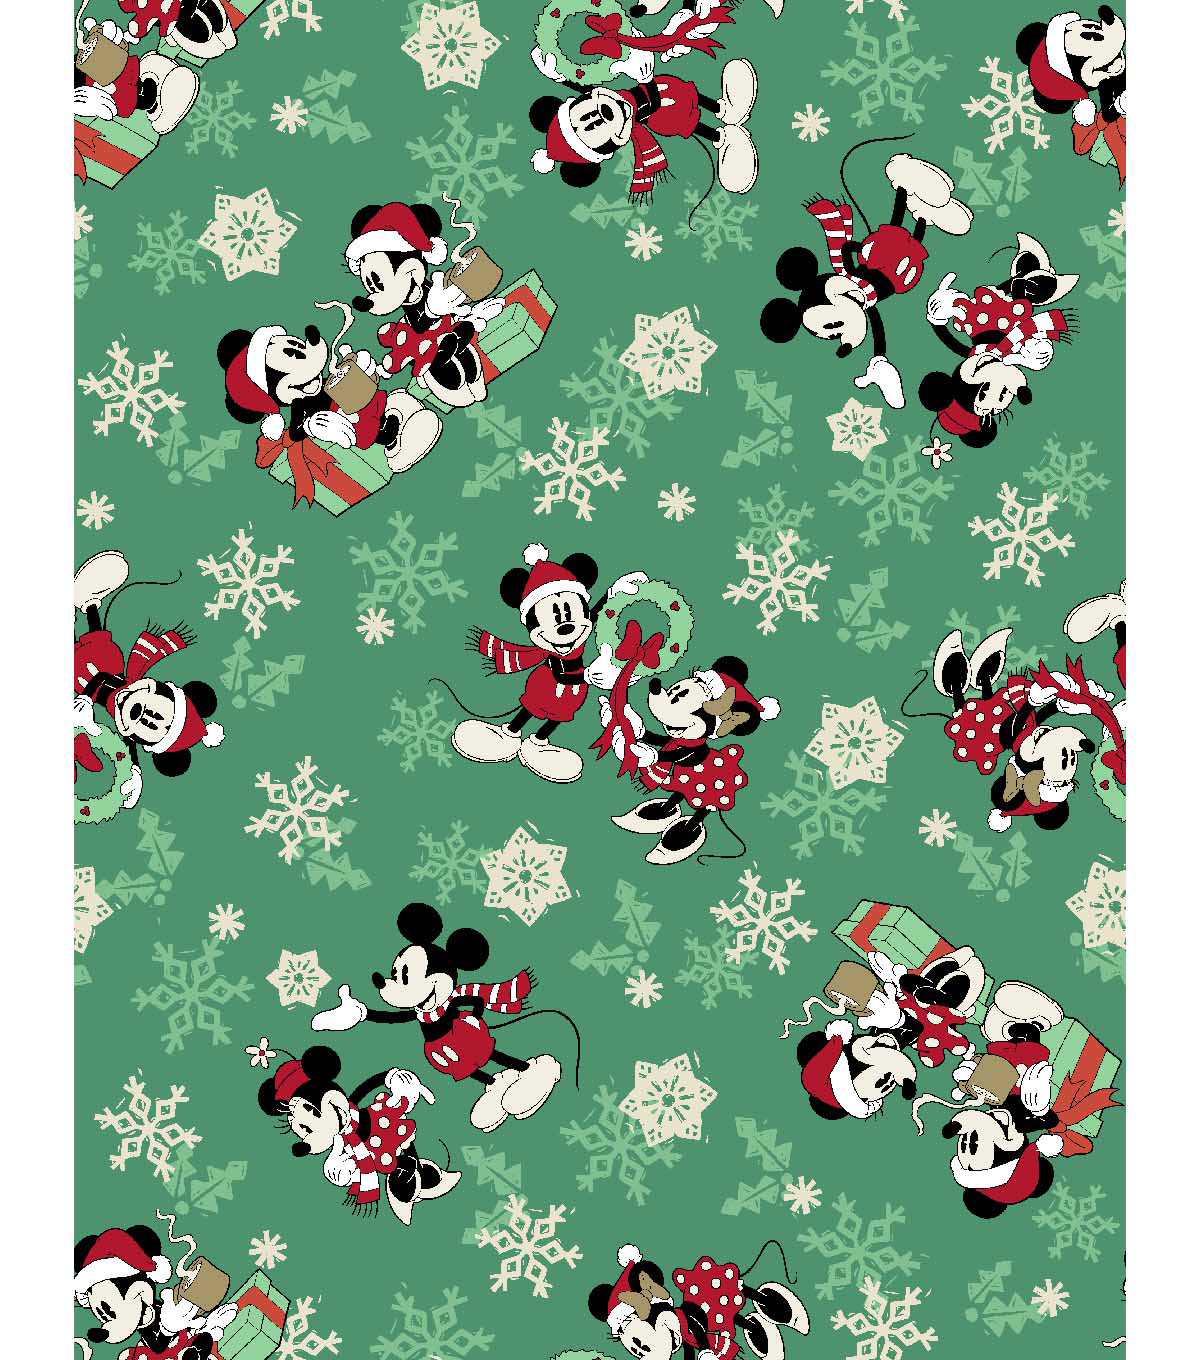 Disney® Cotton Print Fabric 43''-Snowflakes, Mickey & Minnie Mouse